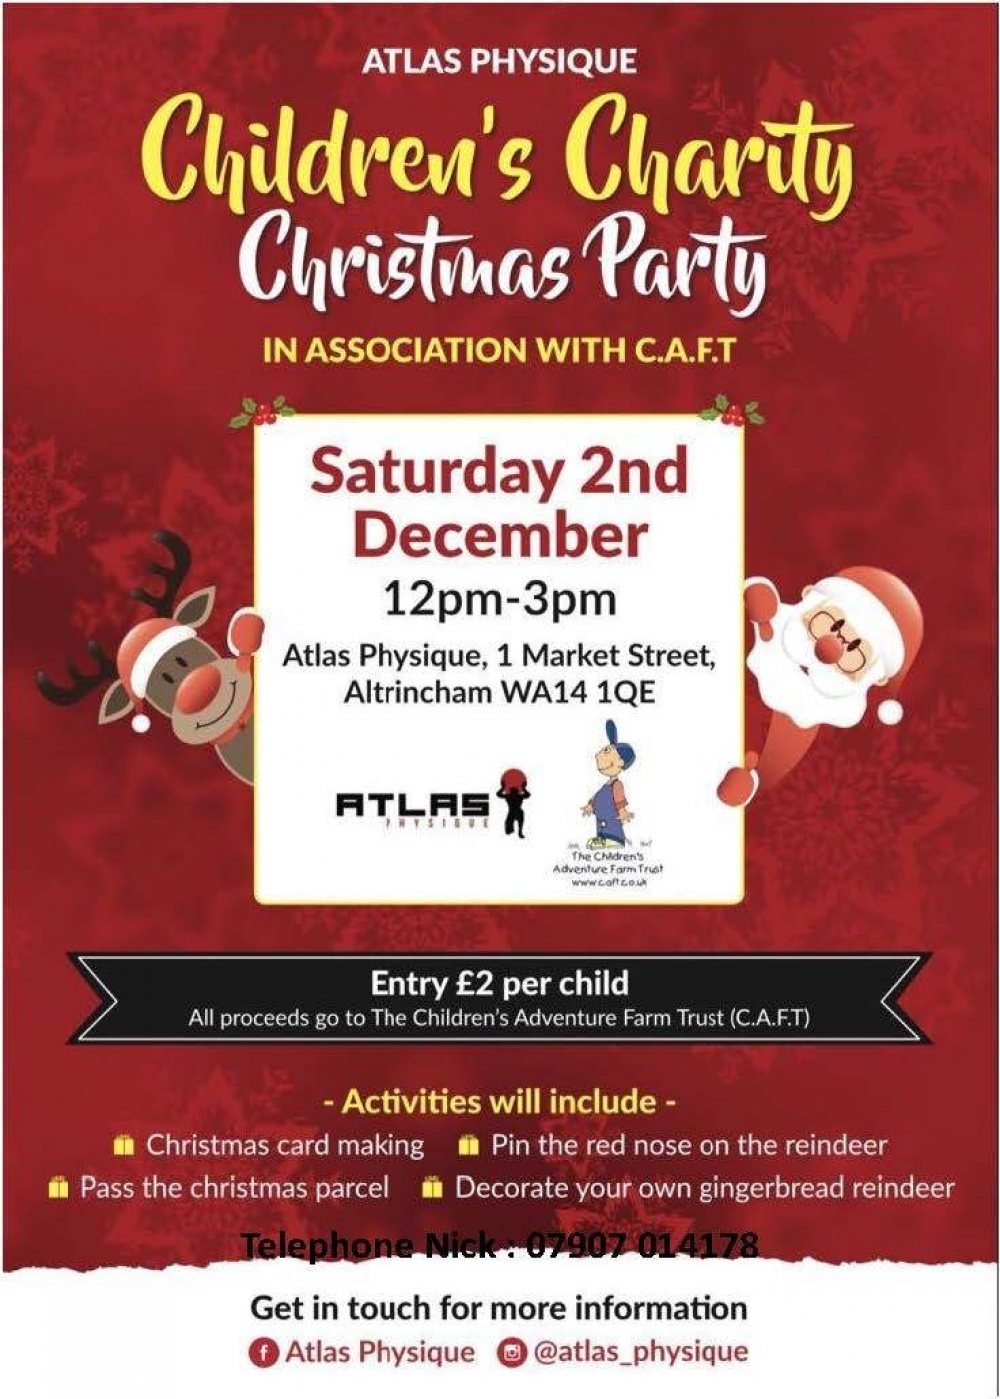 Children's Charity Christmas Party